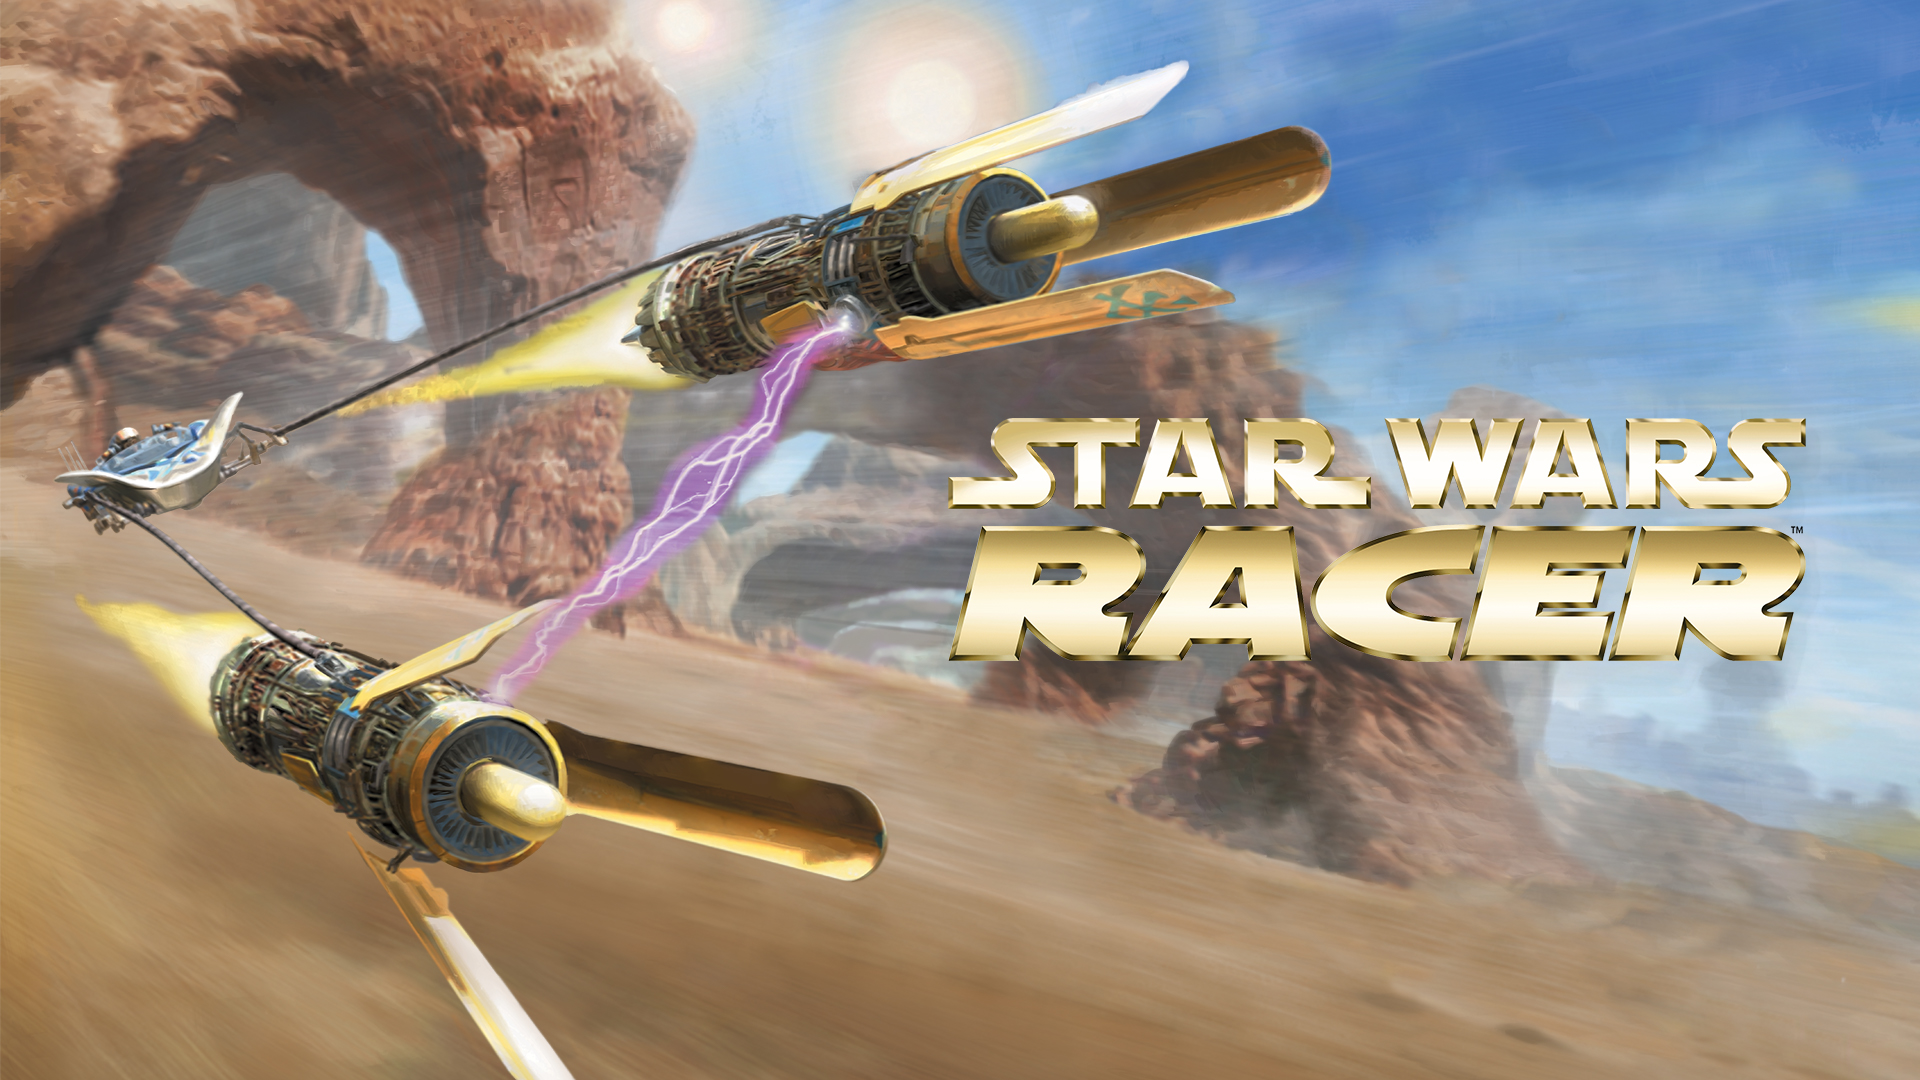 Star Wars Epiosde 1: Racer – Nintendo Switch Review